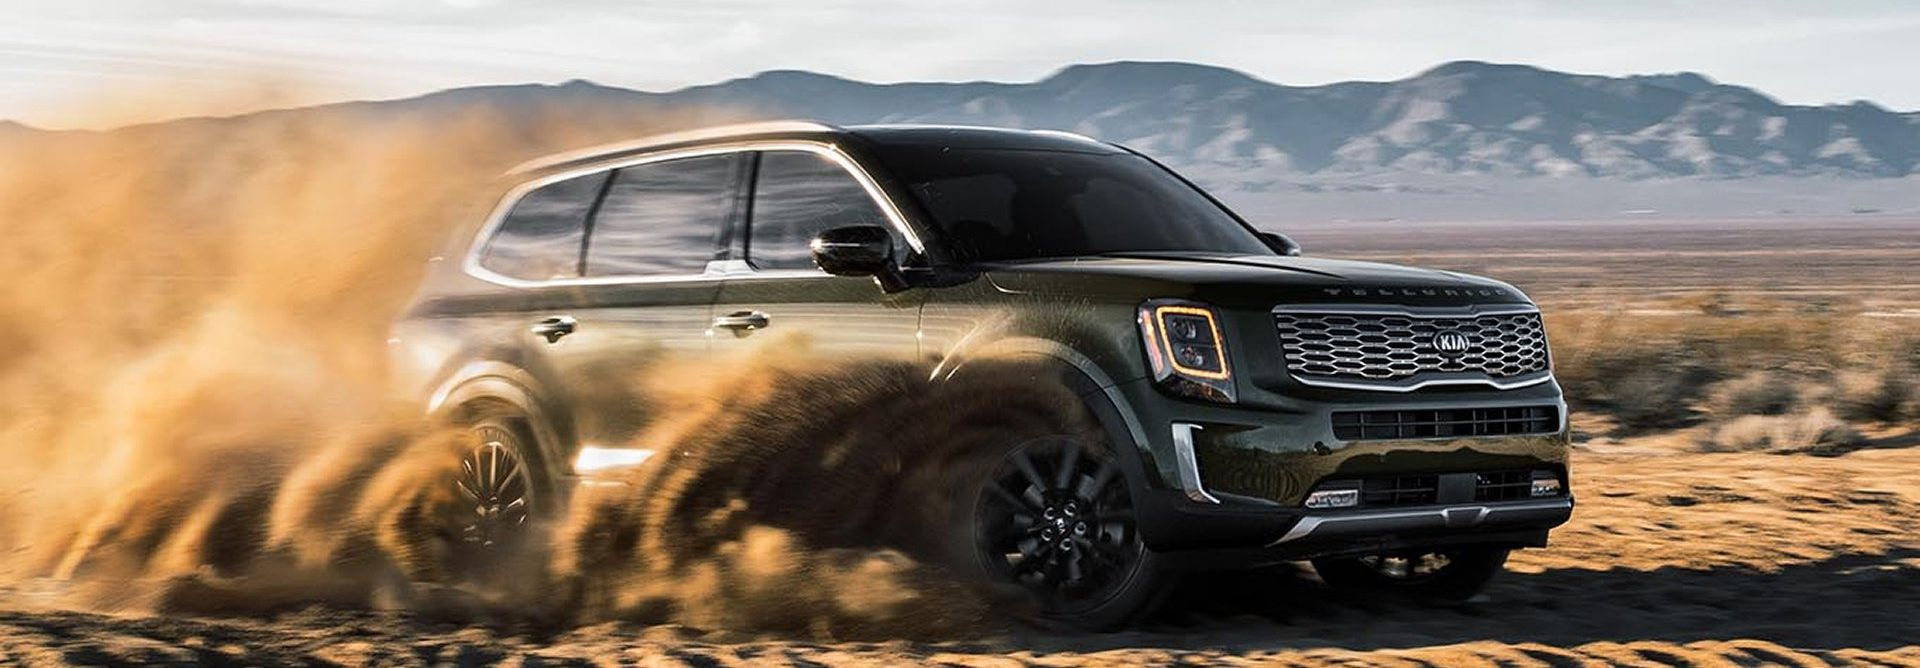 2020 Kia Telluride for Sale near Deer Park, TX